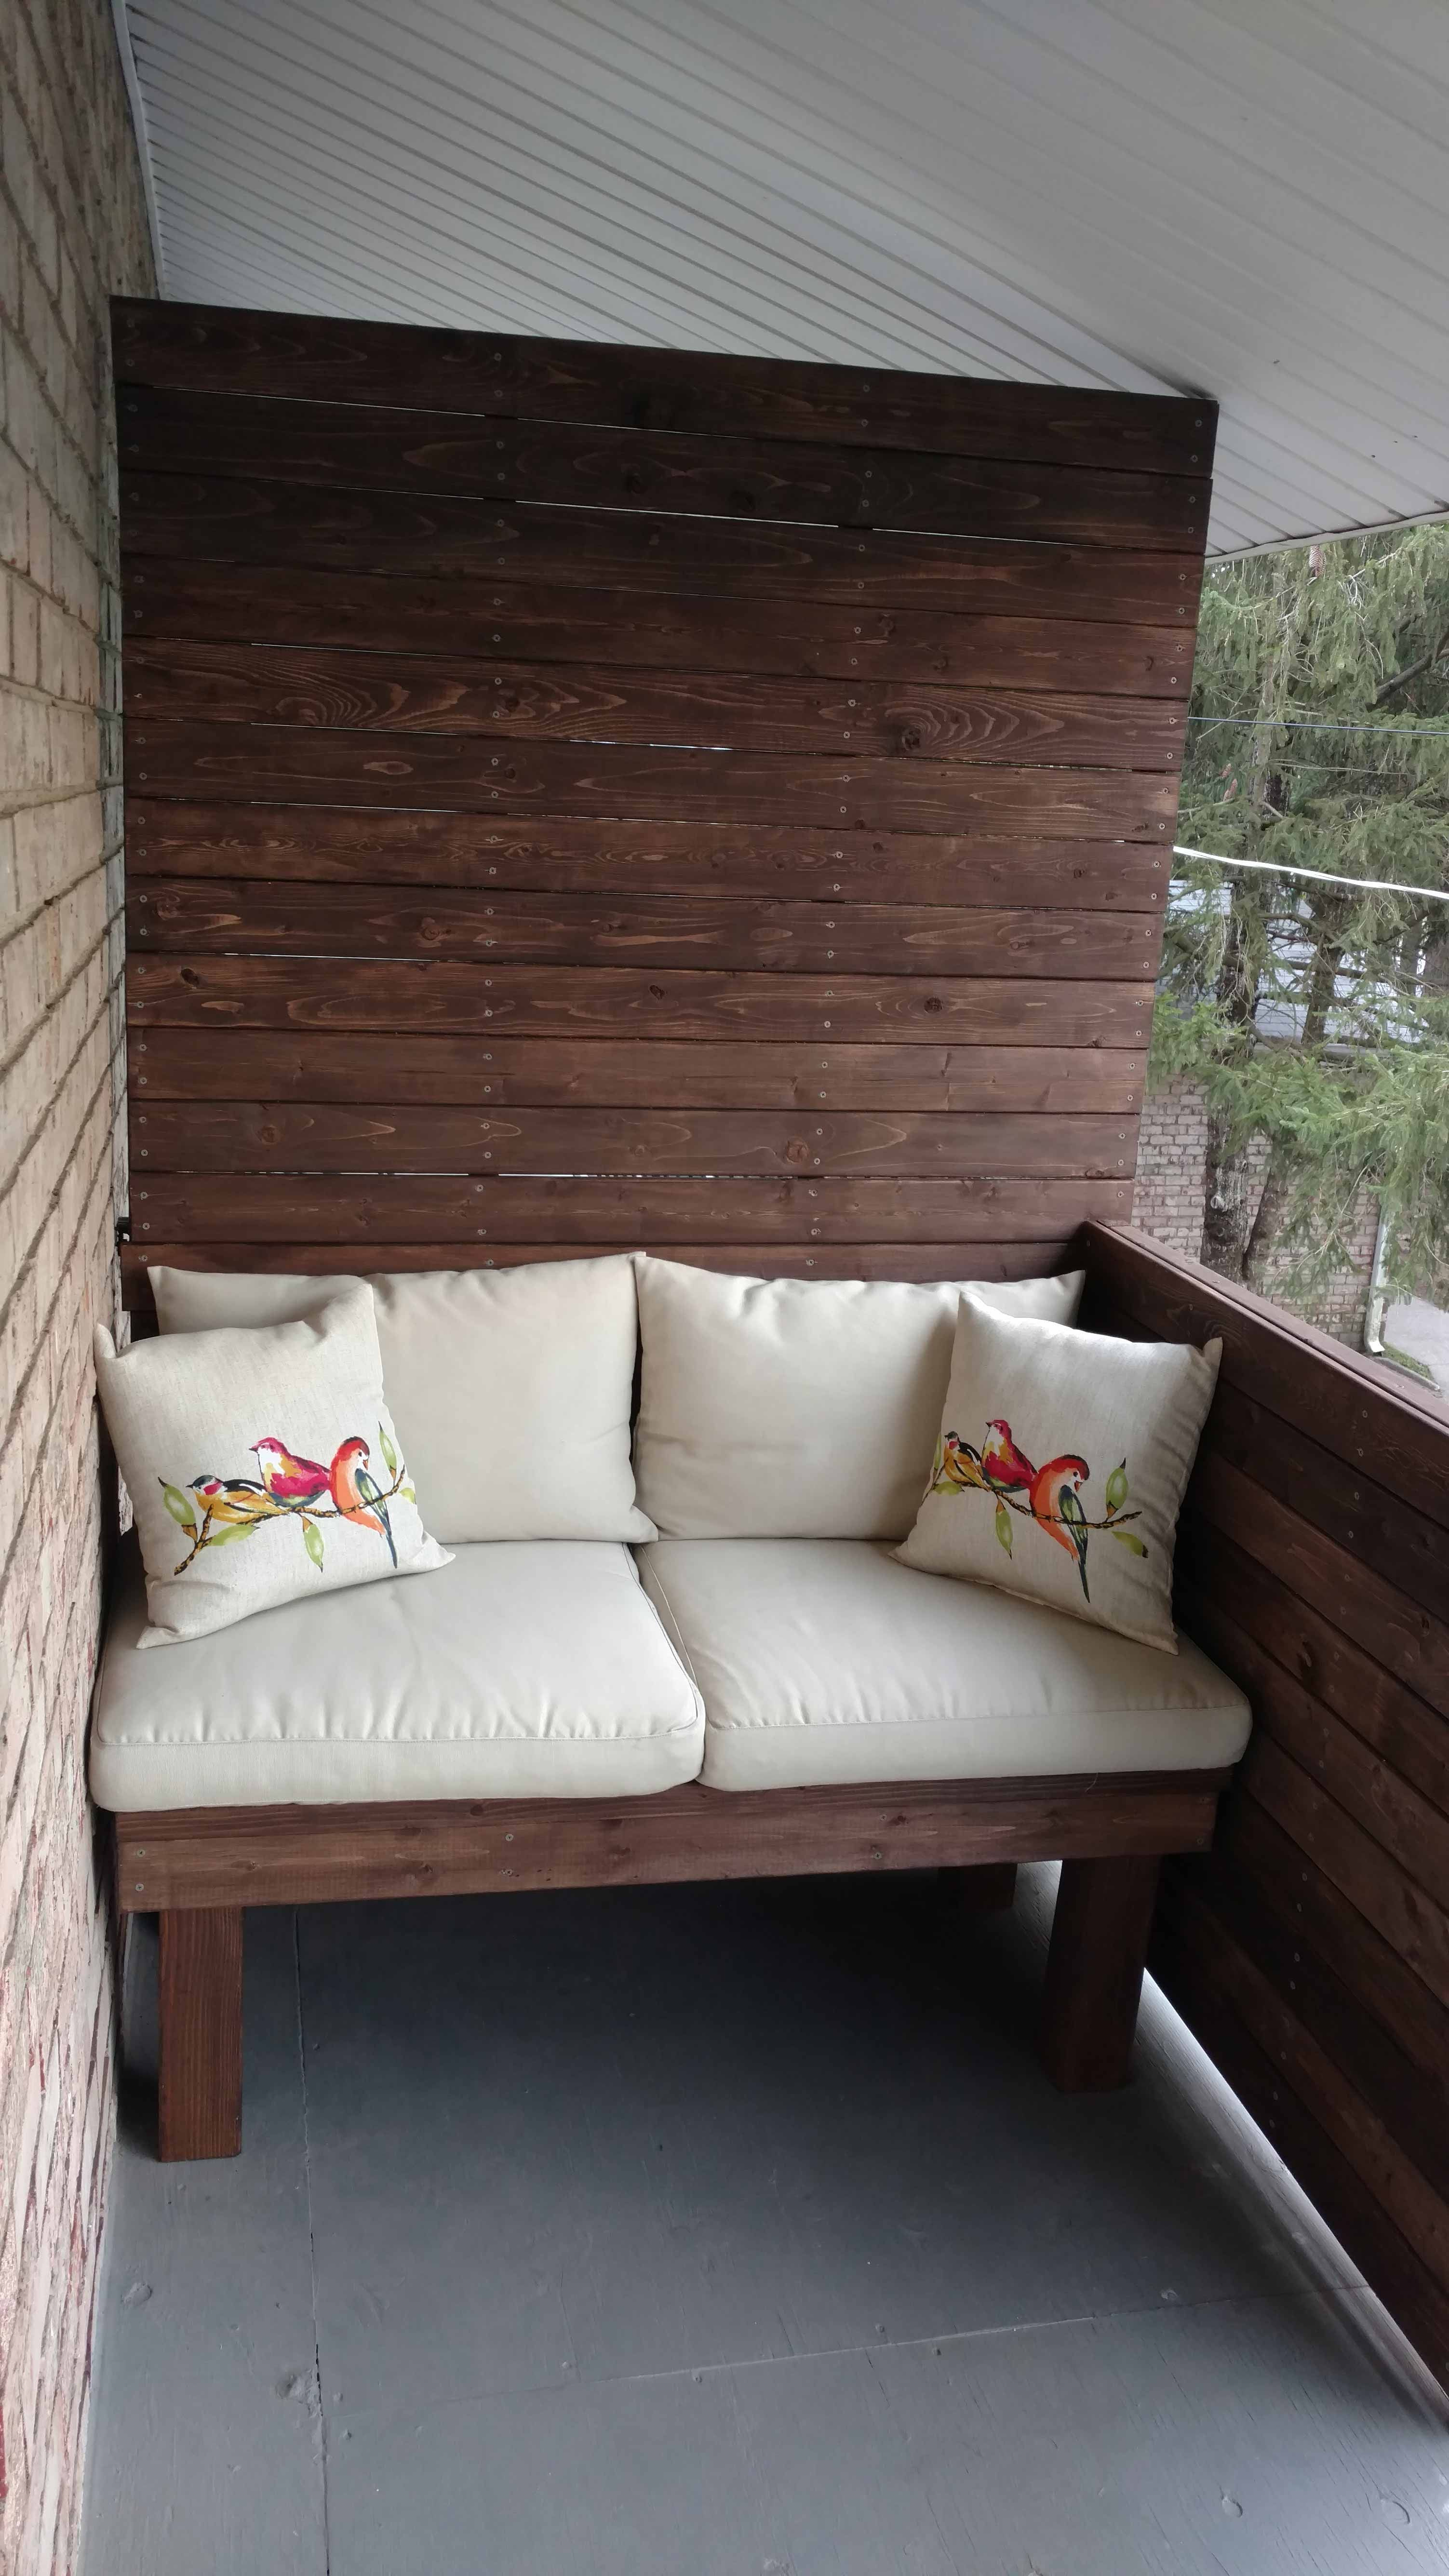 Engineeryourspace Inspired Project Easy Diy Outdoor Bench Perfect For A Small Balcony Thanks For Sharing Yo Wood Bench Outdoor Diy Bench Outdoor Diy Outdoor